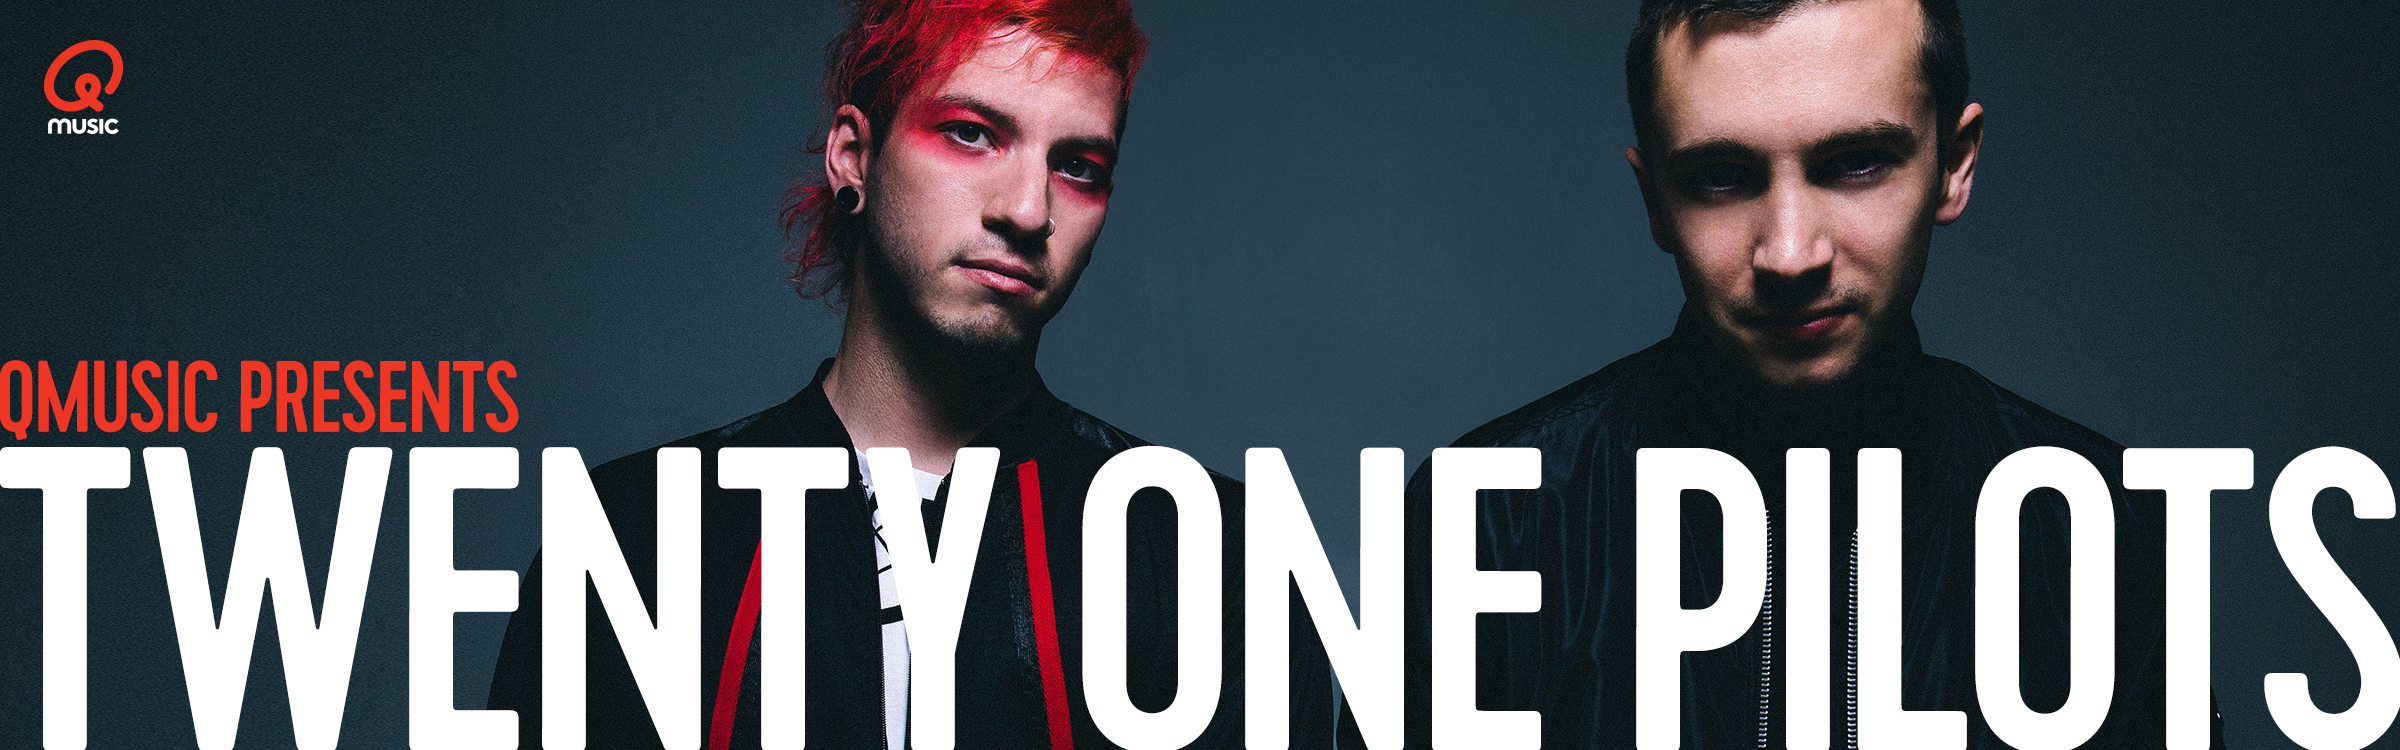 Qmusic actionheader twentyonepilots